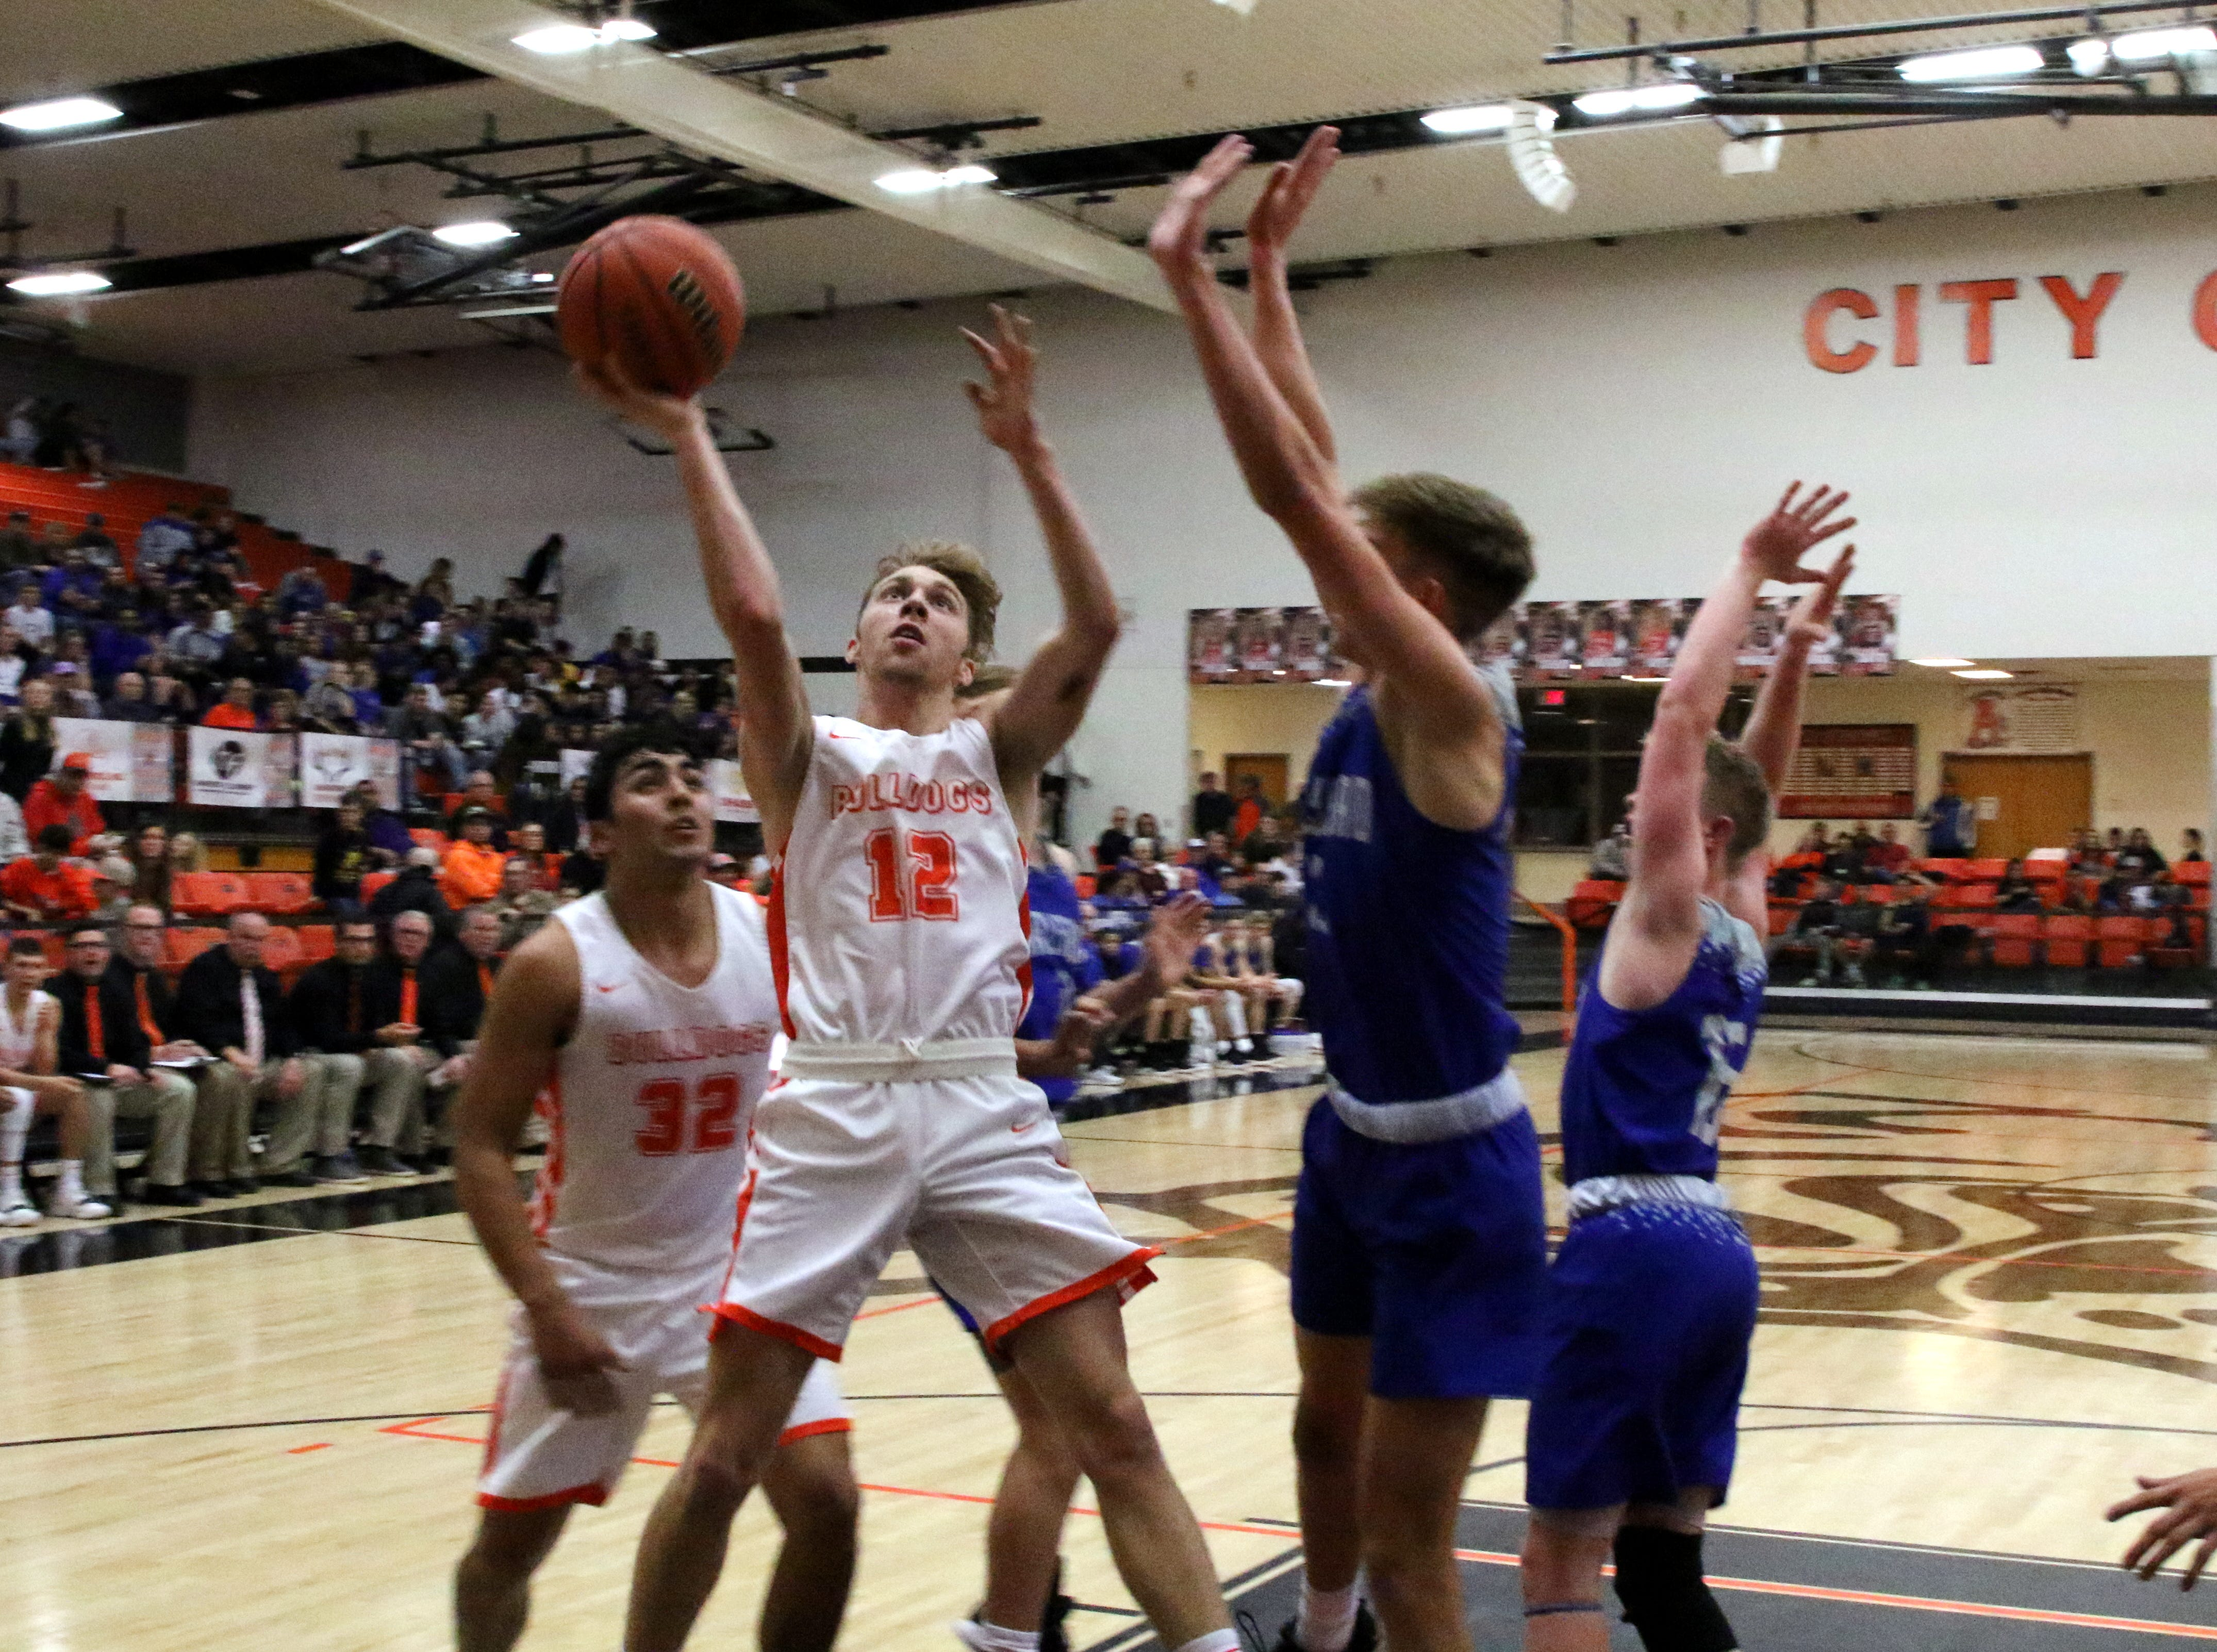 Artesia's Luke Nelson (12) gets off a shot during Friday's game against Carlsbad. Nelson finished with four points.